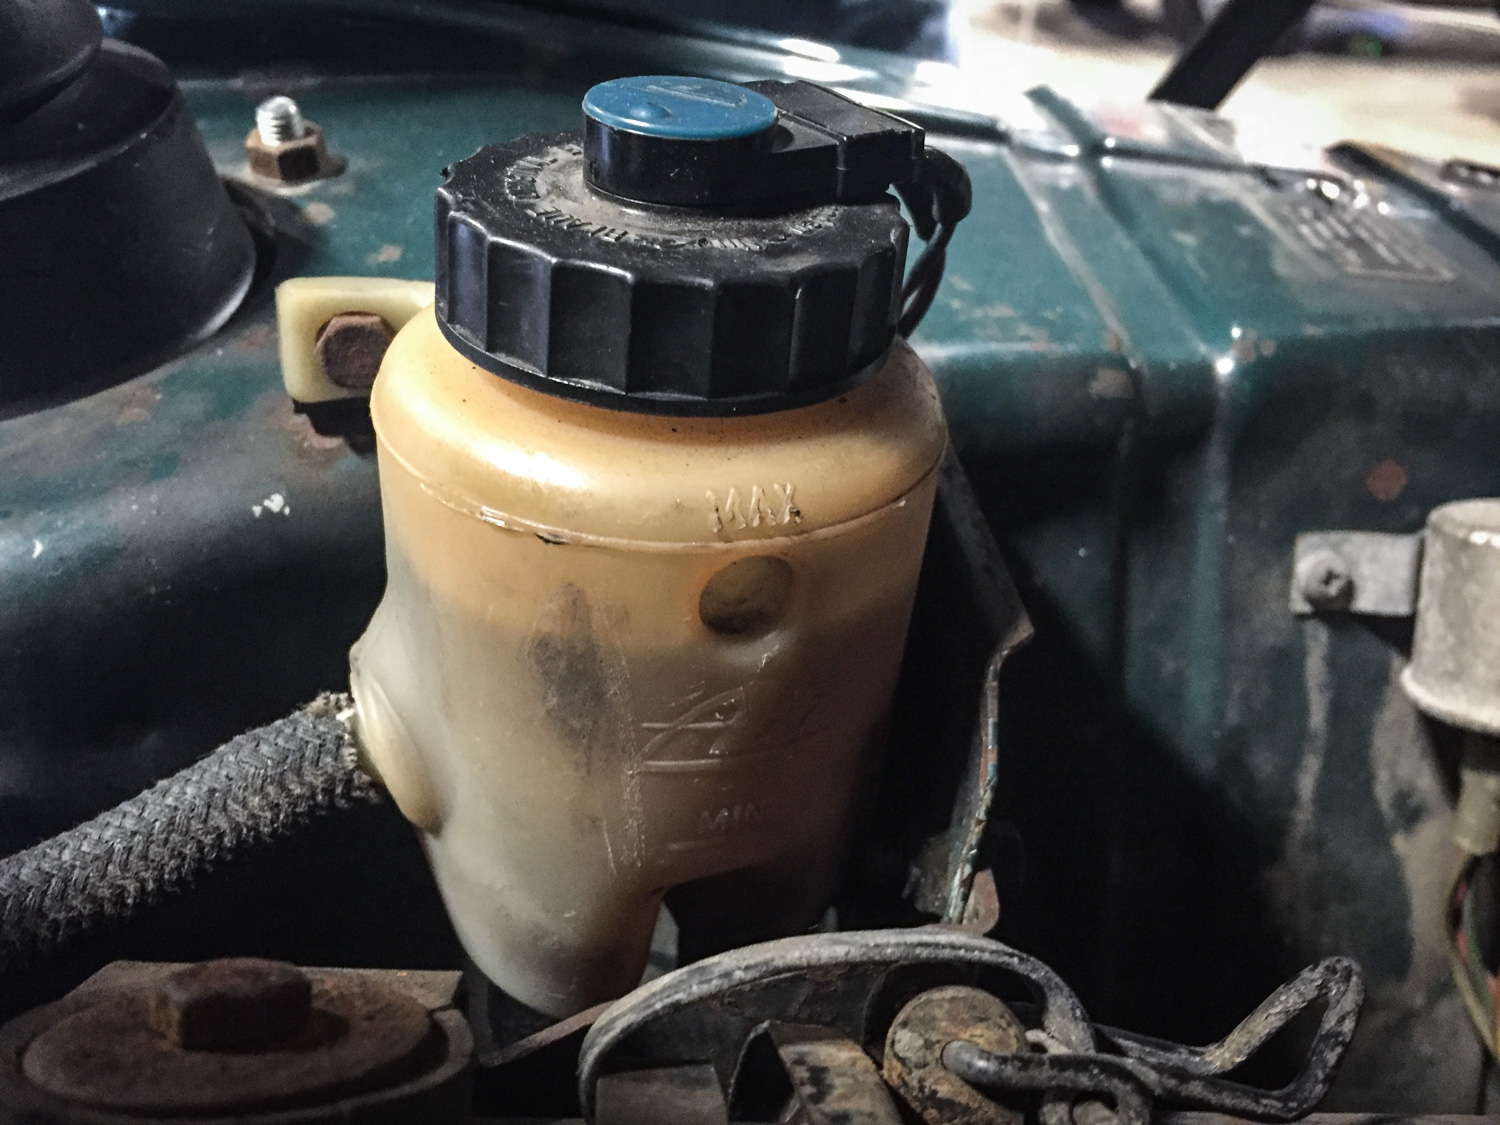 The photo I was sent of the fluid reservoir showed the fluid clearly above the level of the clutch hose on the left, indicating that the clutch hydraulics weren't out of fluid.